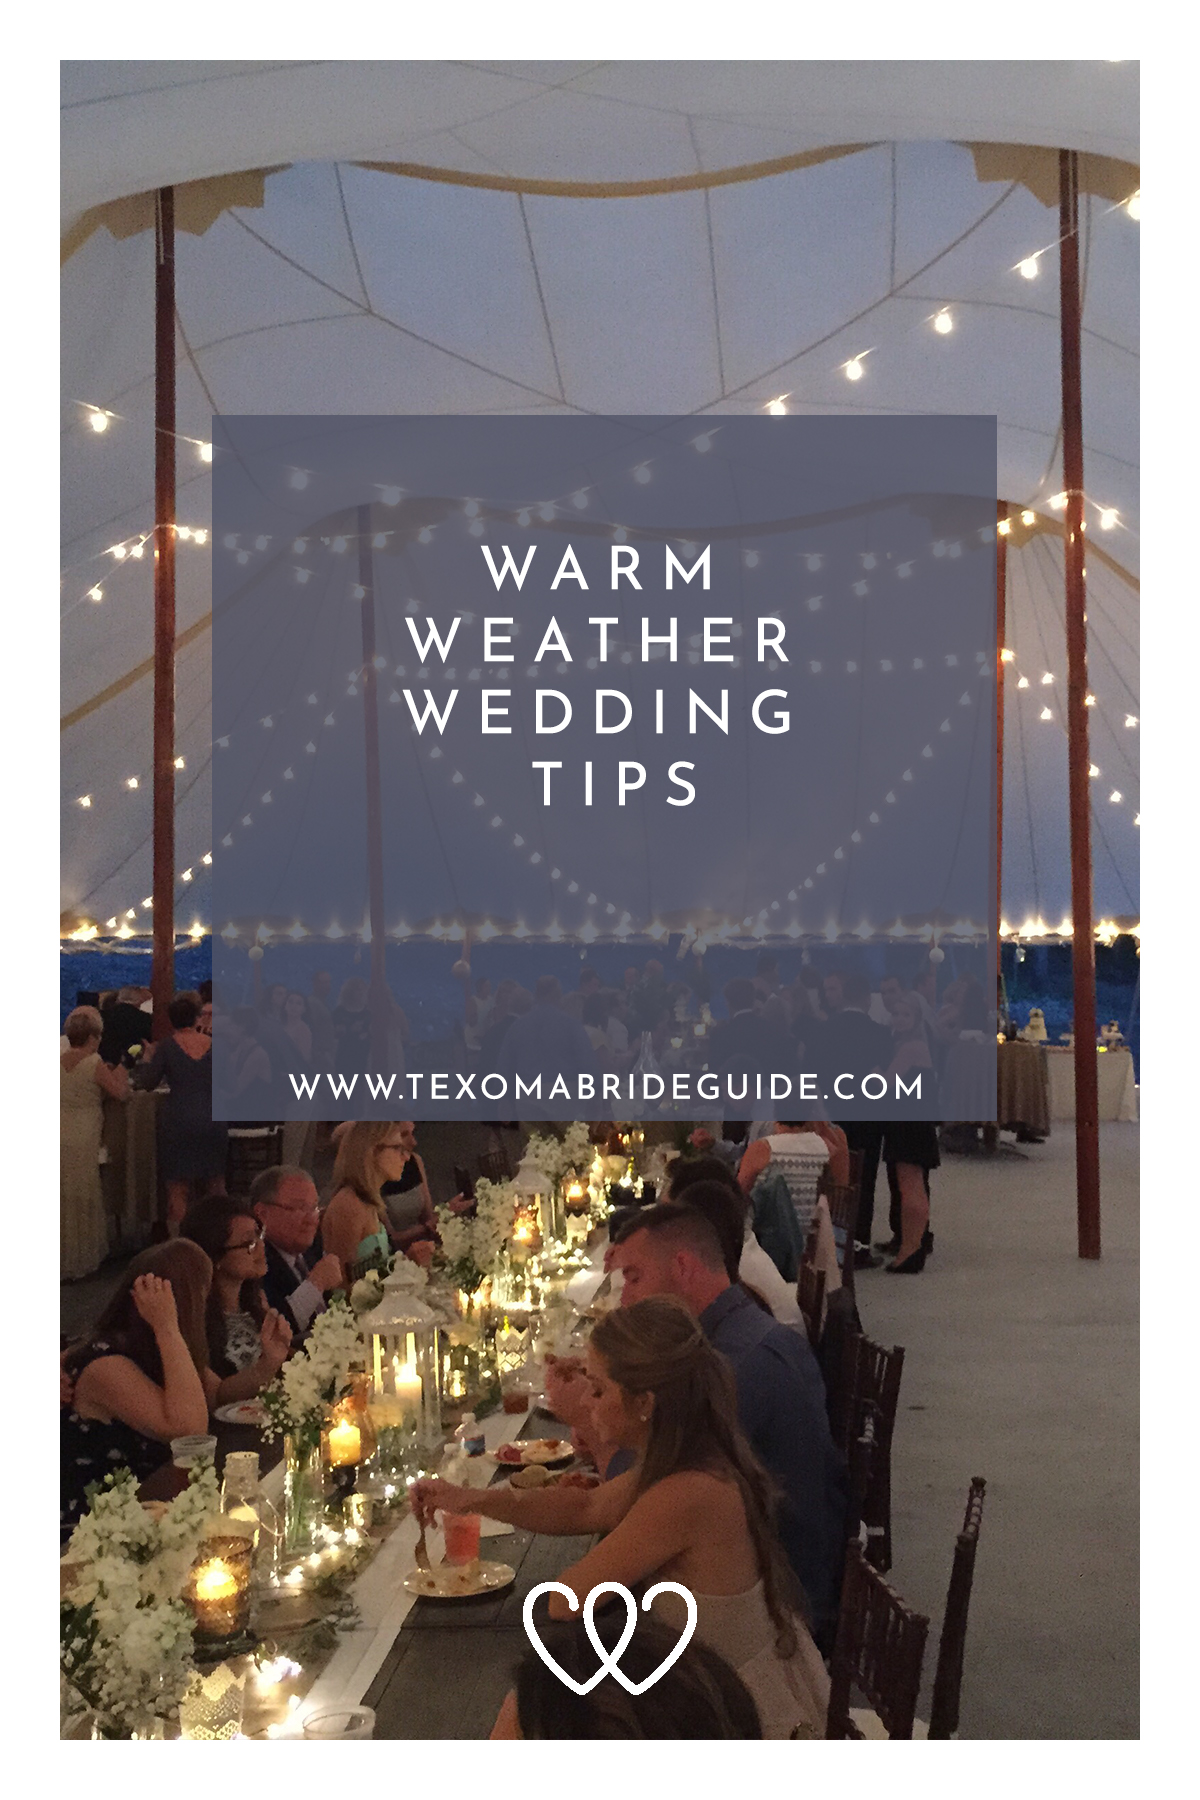 Warm Weather Wedding Tips | Texoma Bride Guide Blog